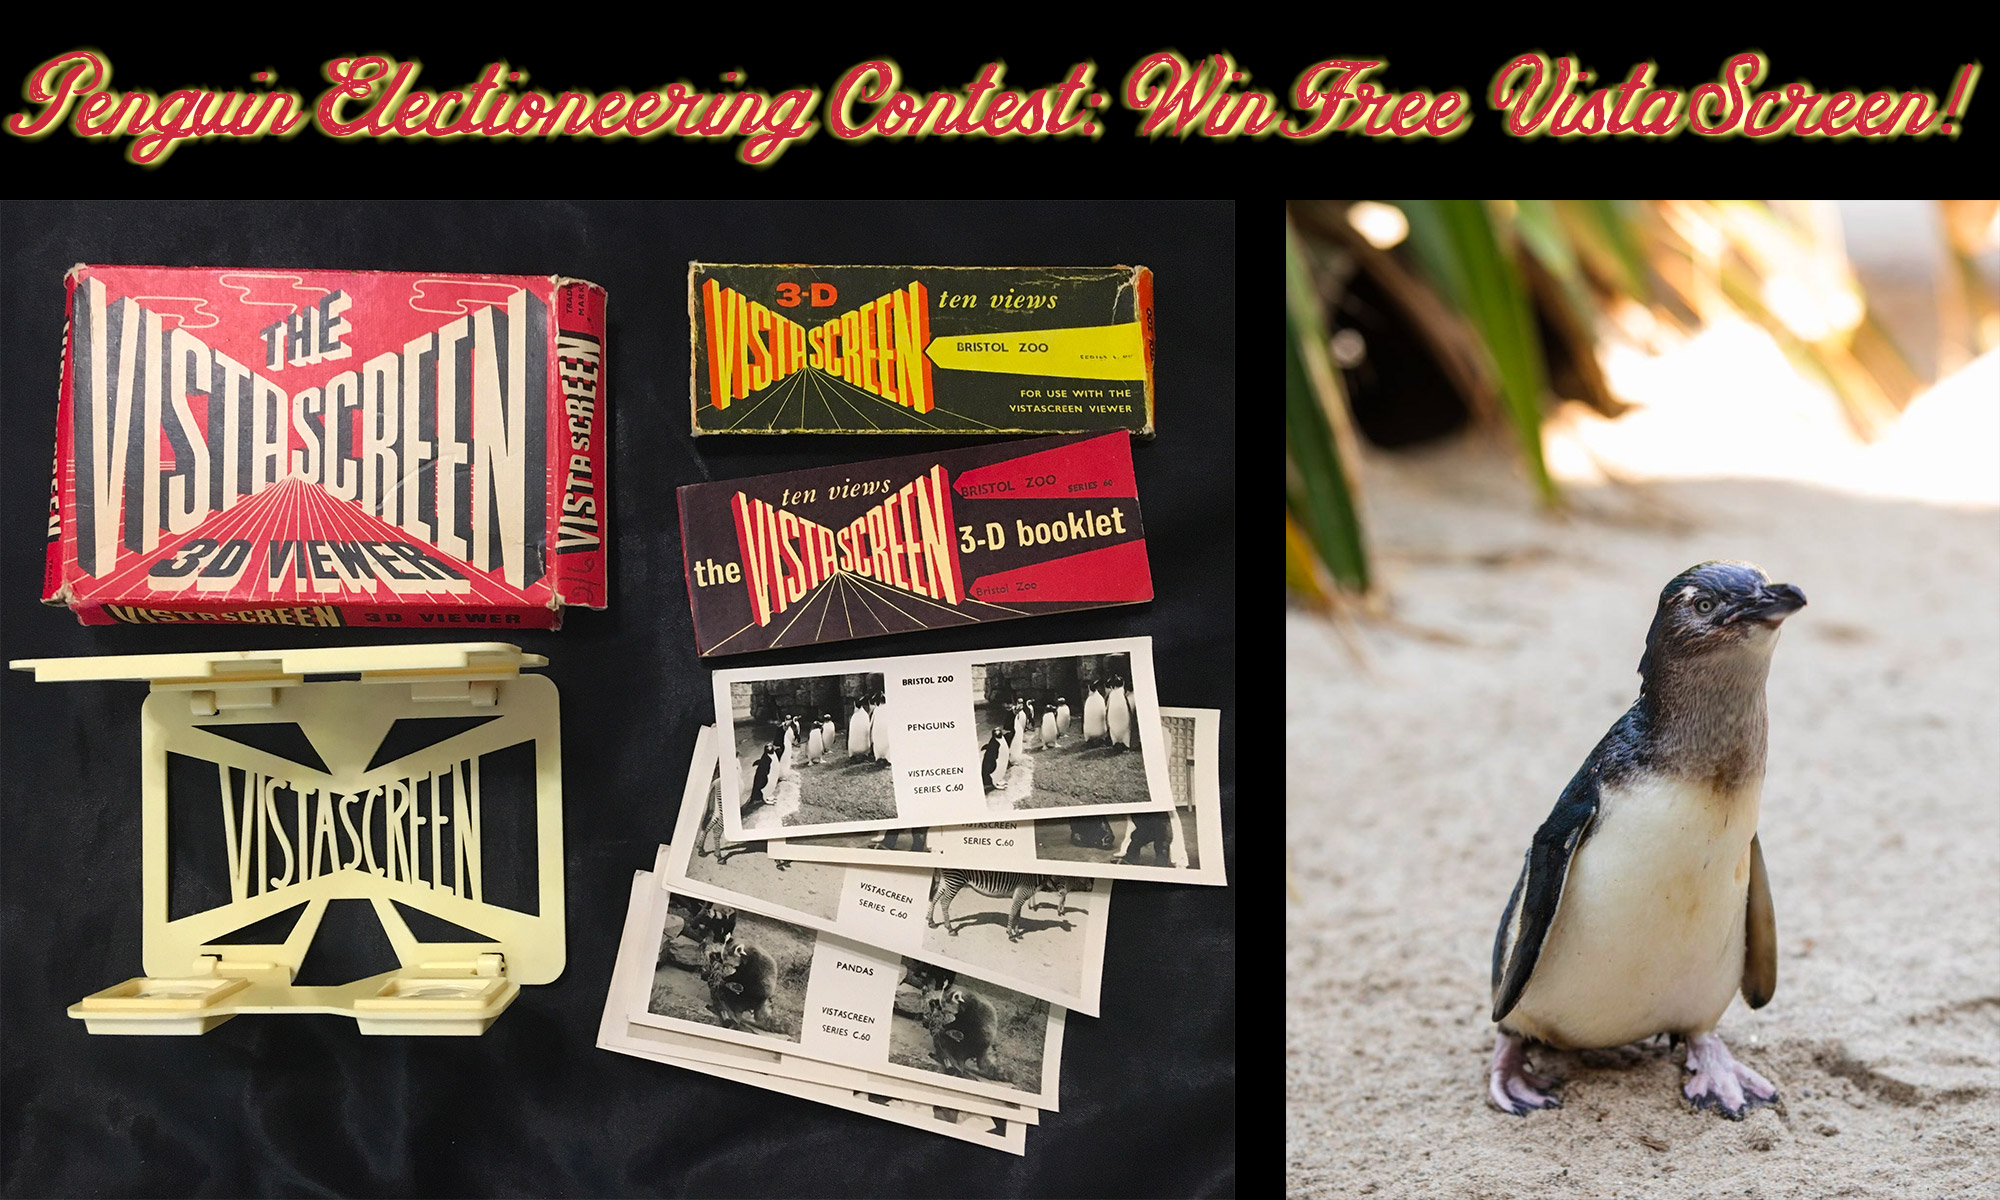 Penguin Electioneering Contest: Win a VistaScreen Viewer and Cards!